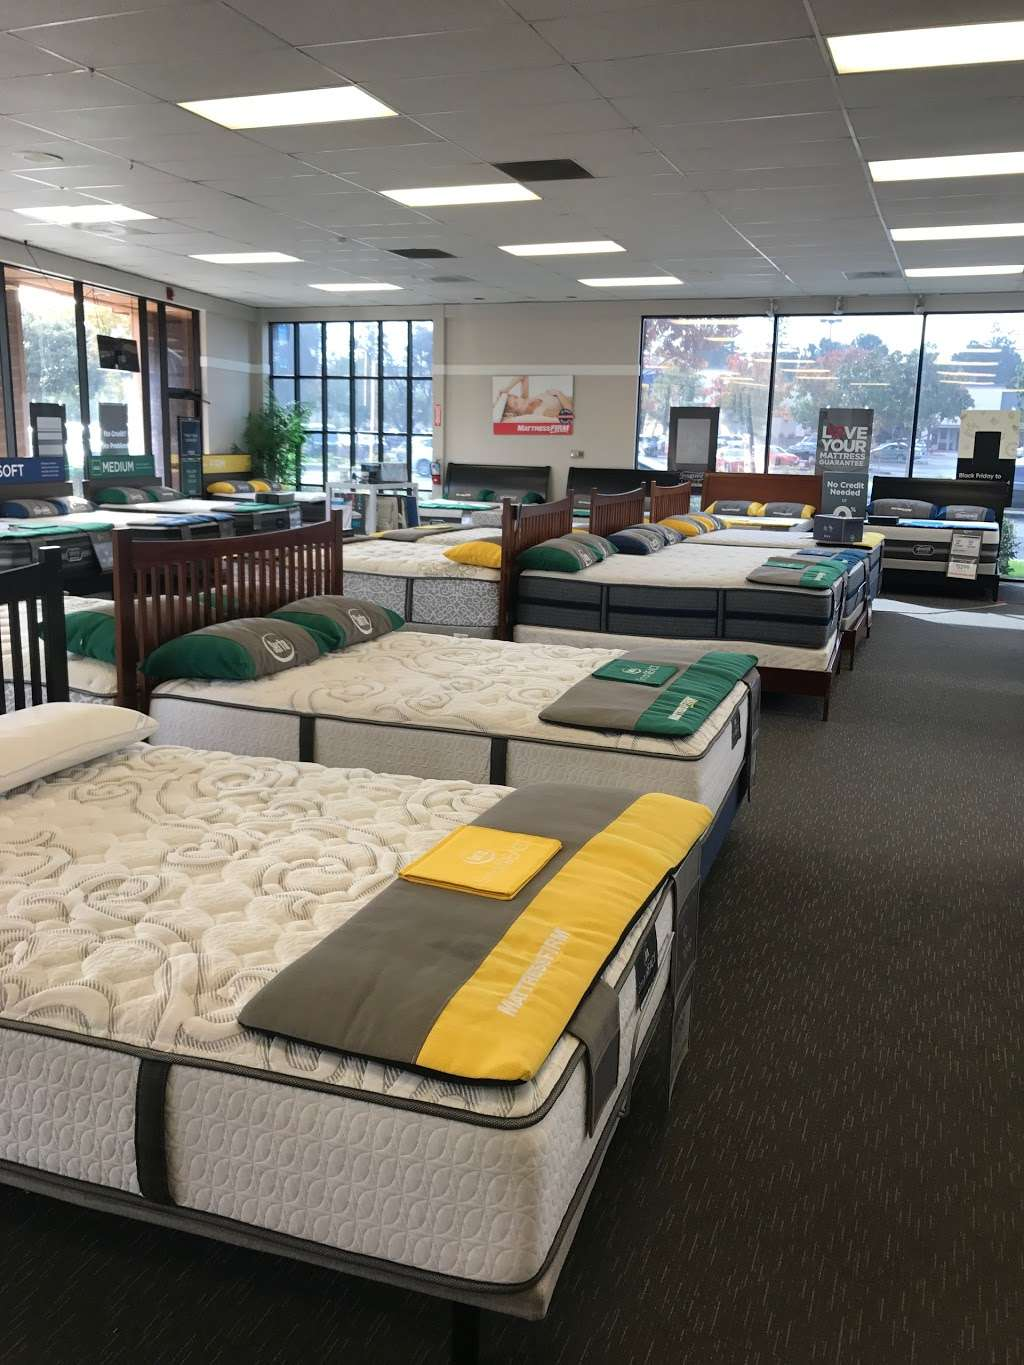 Mattress Firm Mountain View - furniture store  | Photo 8 of 10 | Address: 804 E El Camino Real, Mountain View, CA 94040, USA | Phone: (650) 694-7339